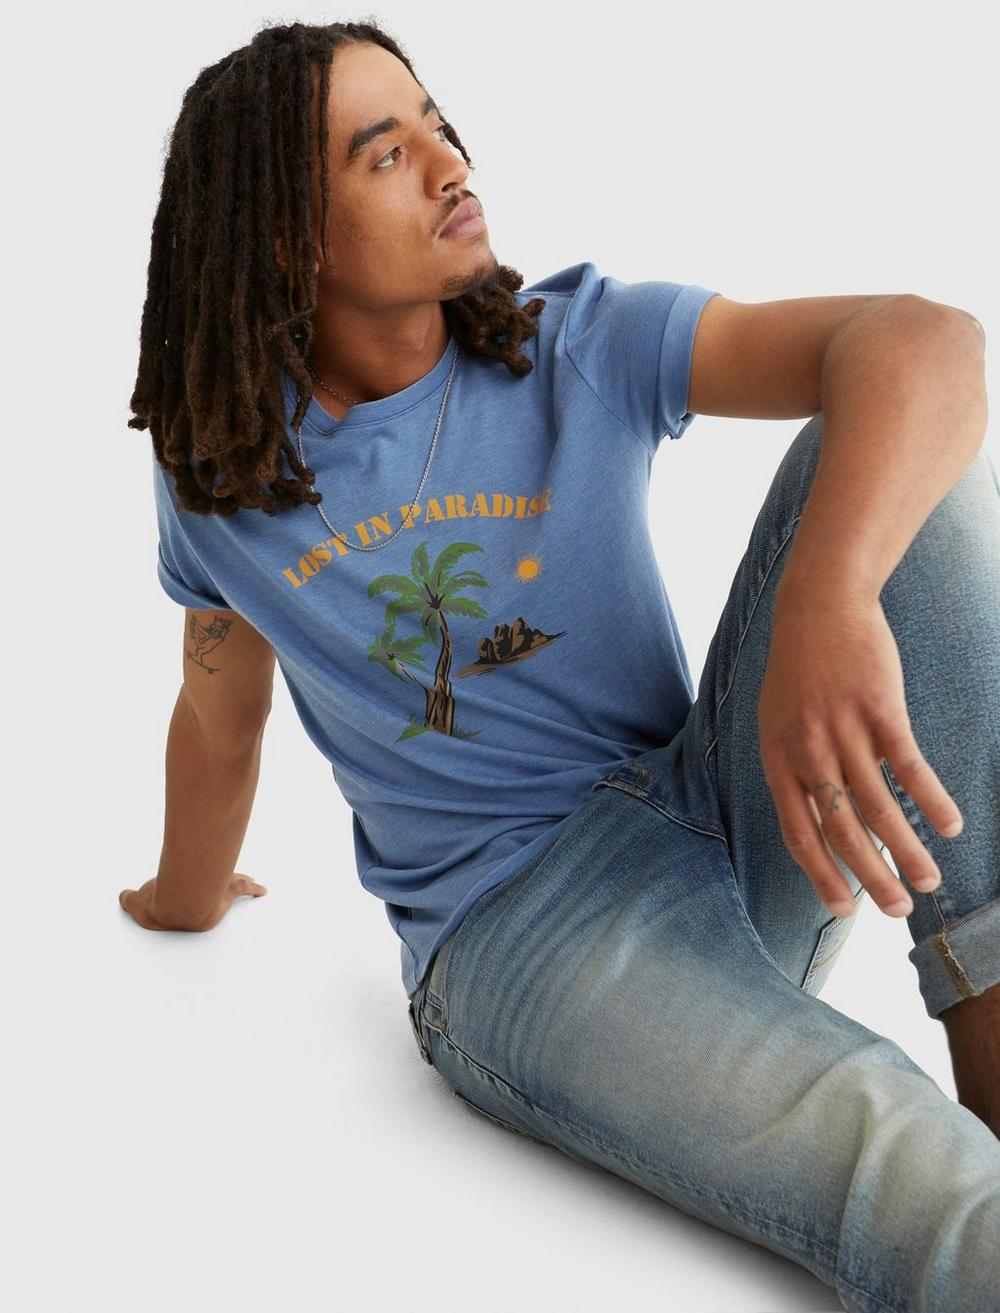 LOST IN PARADISE TEE, image 5